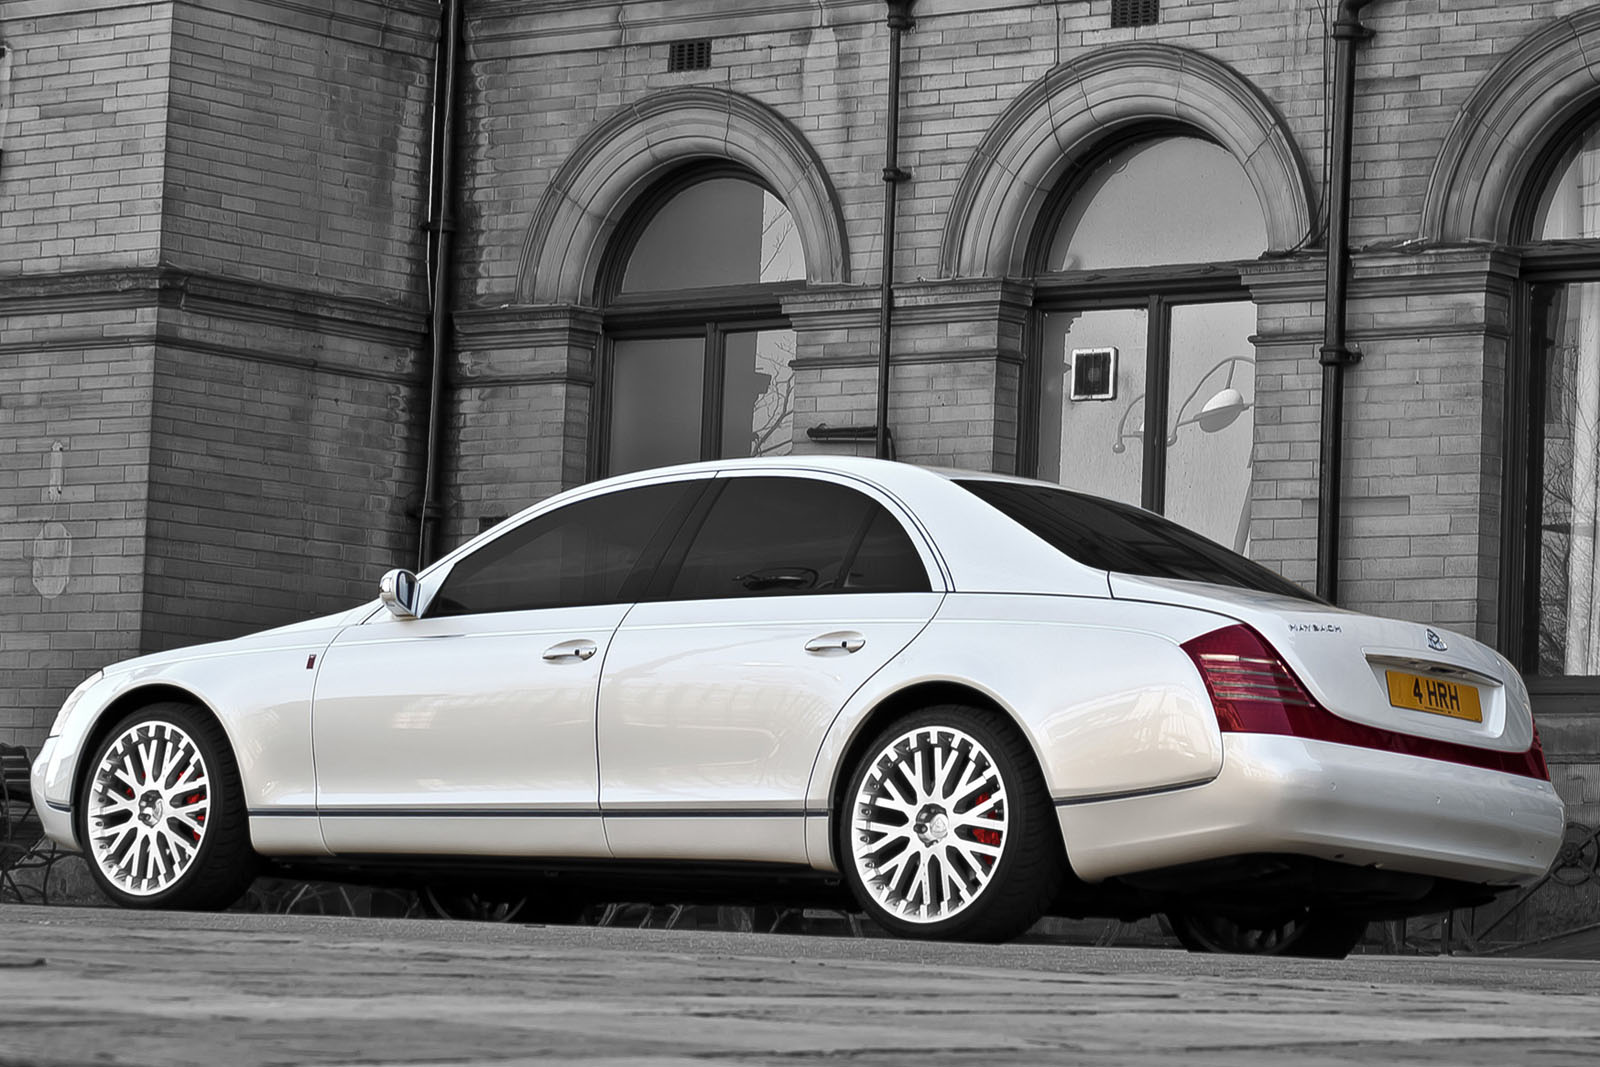 Project Kahn Maybach 57 2 Project Kahn Maybach 57 Edition with Eco Friendly Drive Train